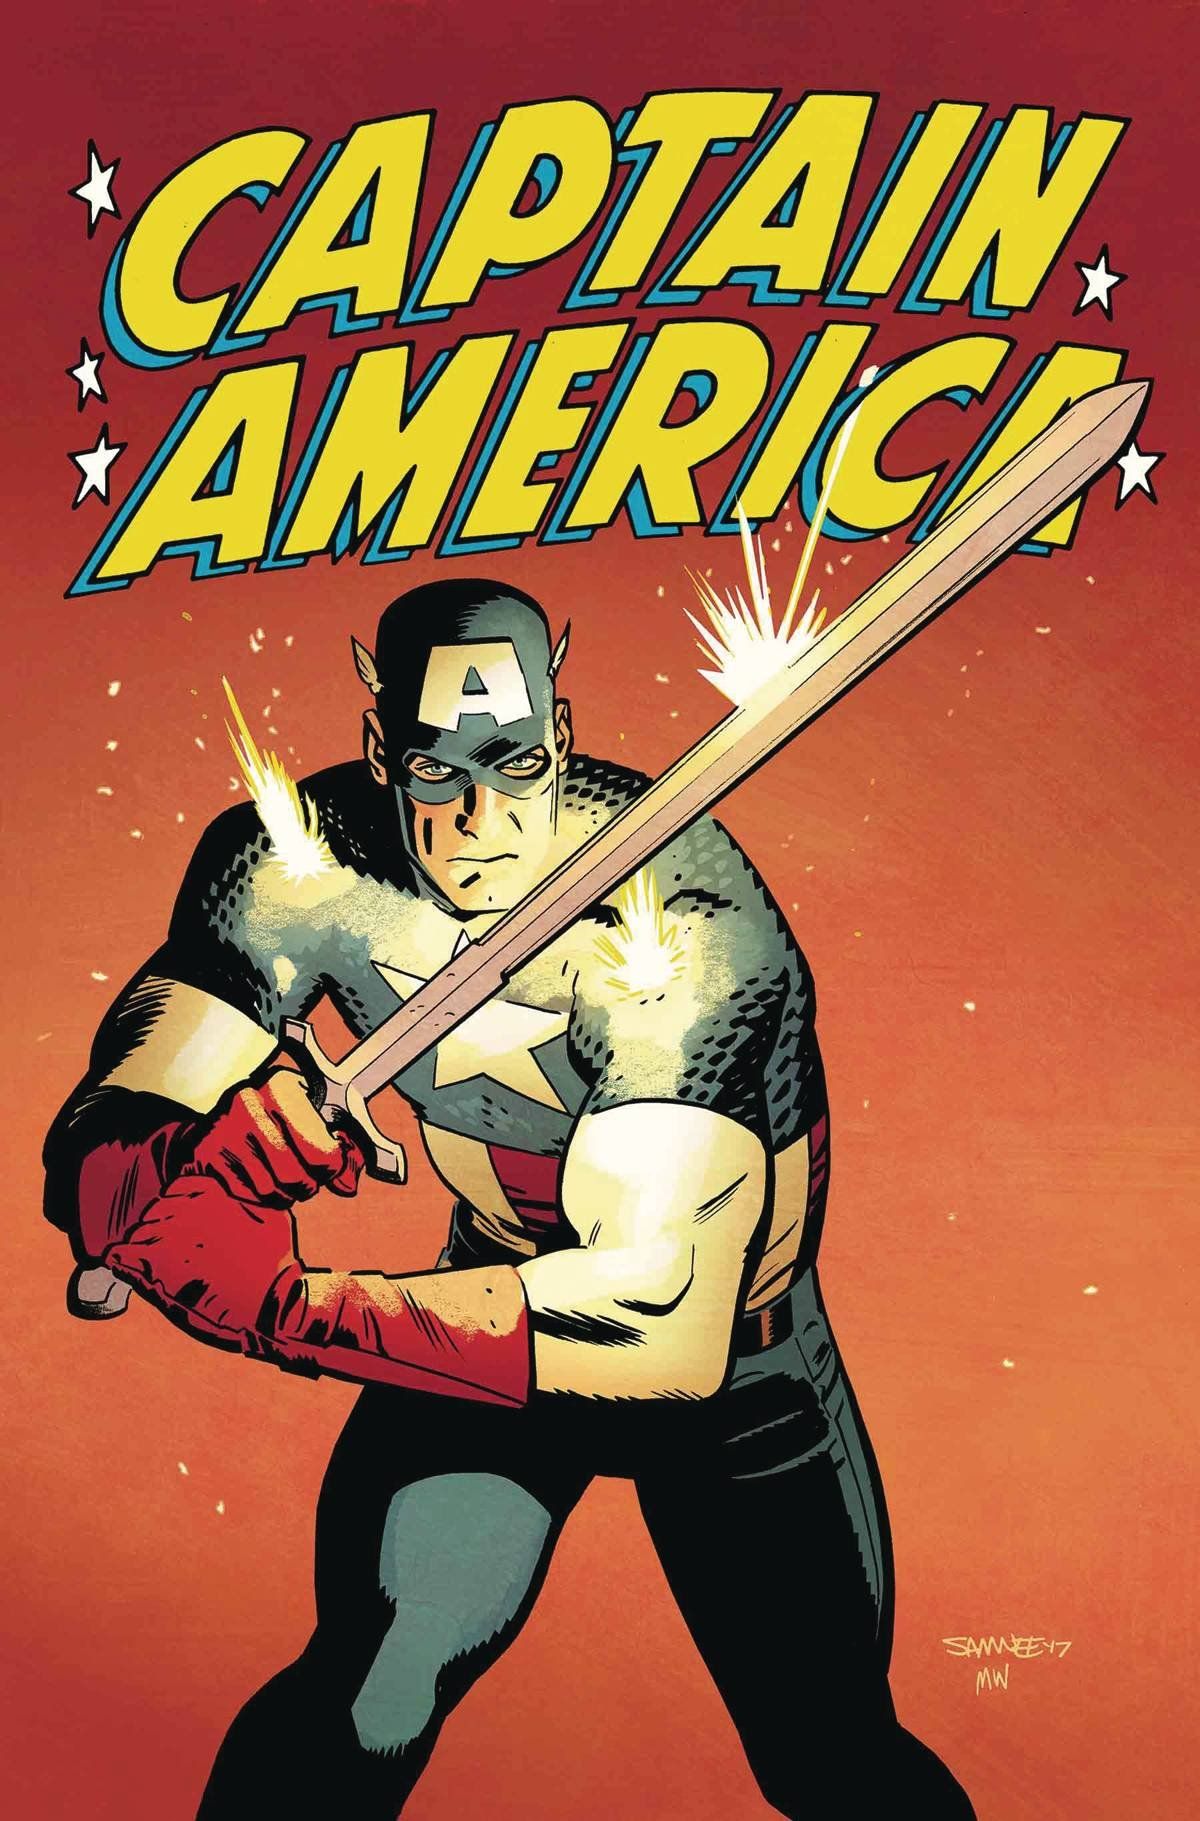 Download CAPTAIN AMERICA #696 LEGACY COVER A Release date 12/6/17 PDF